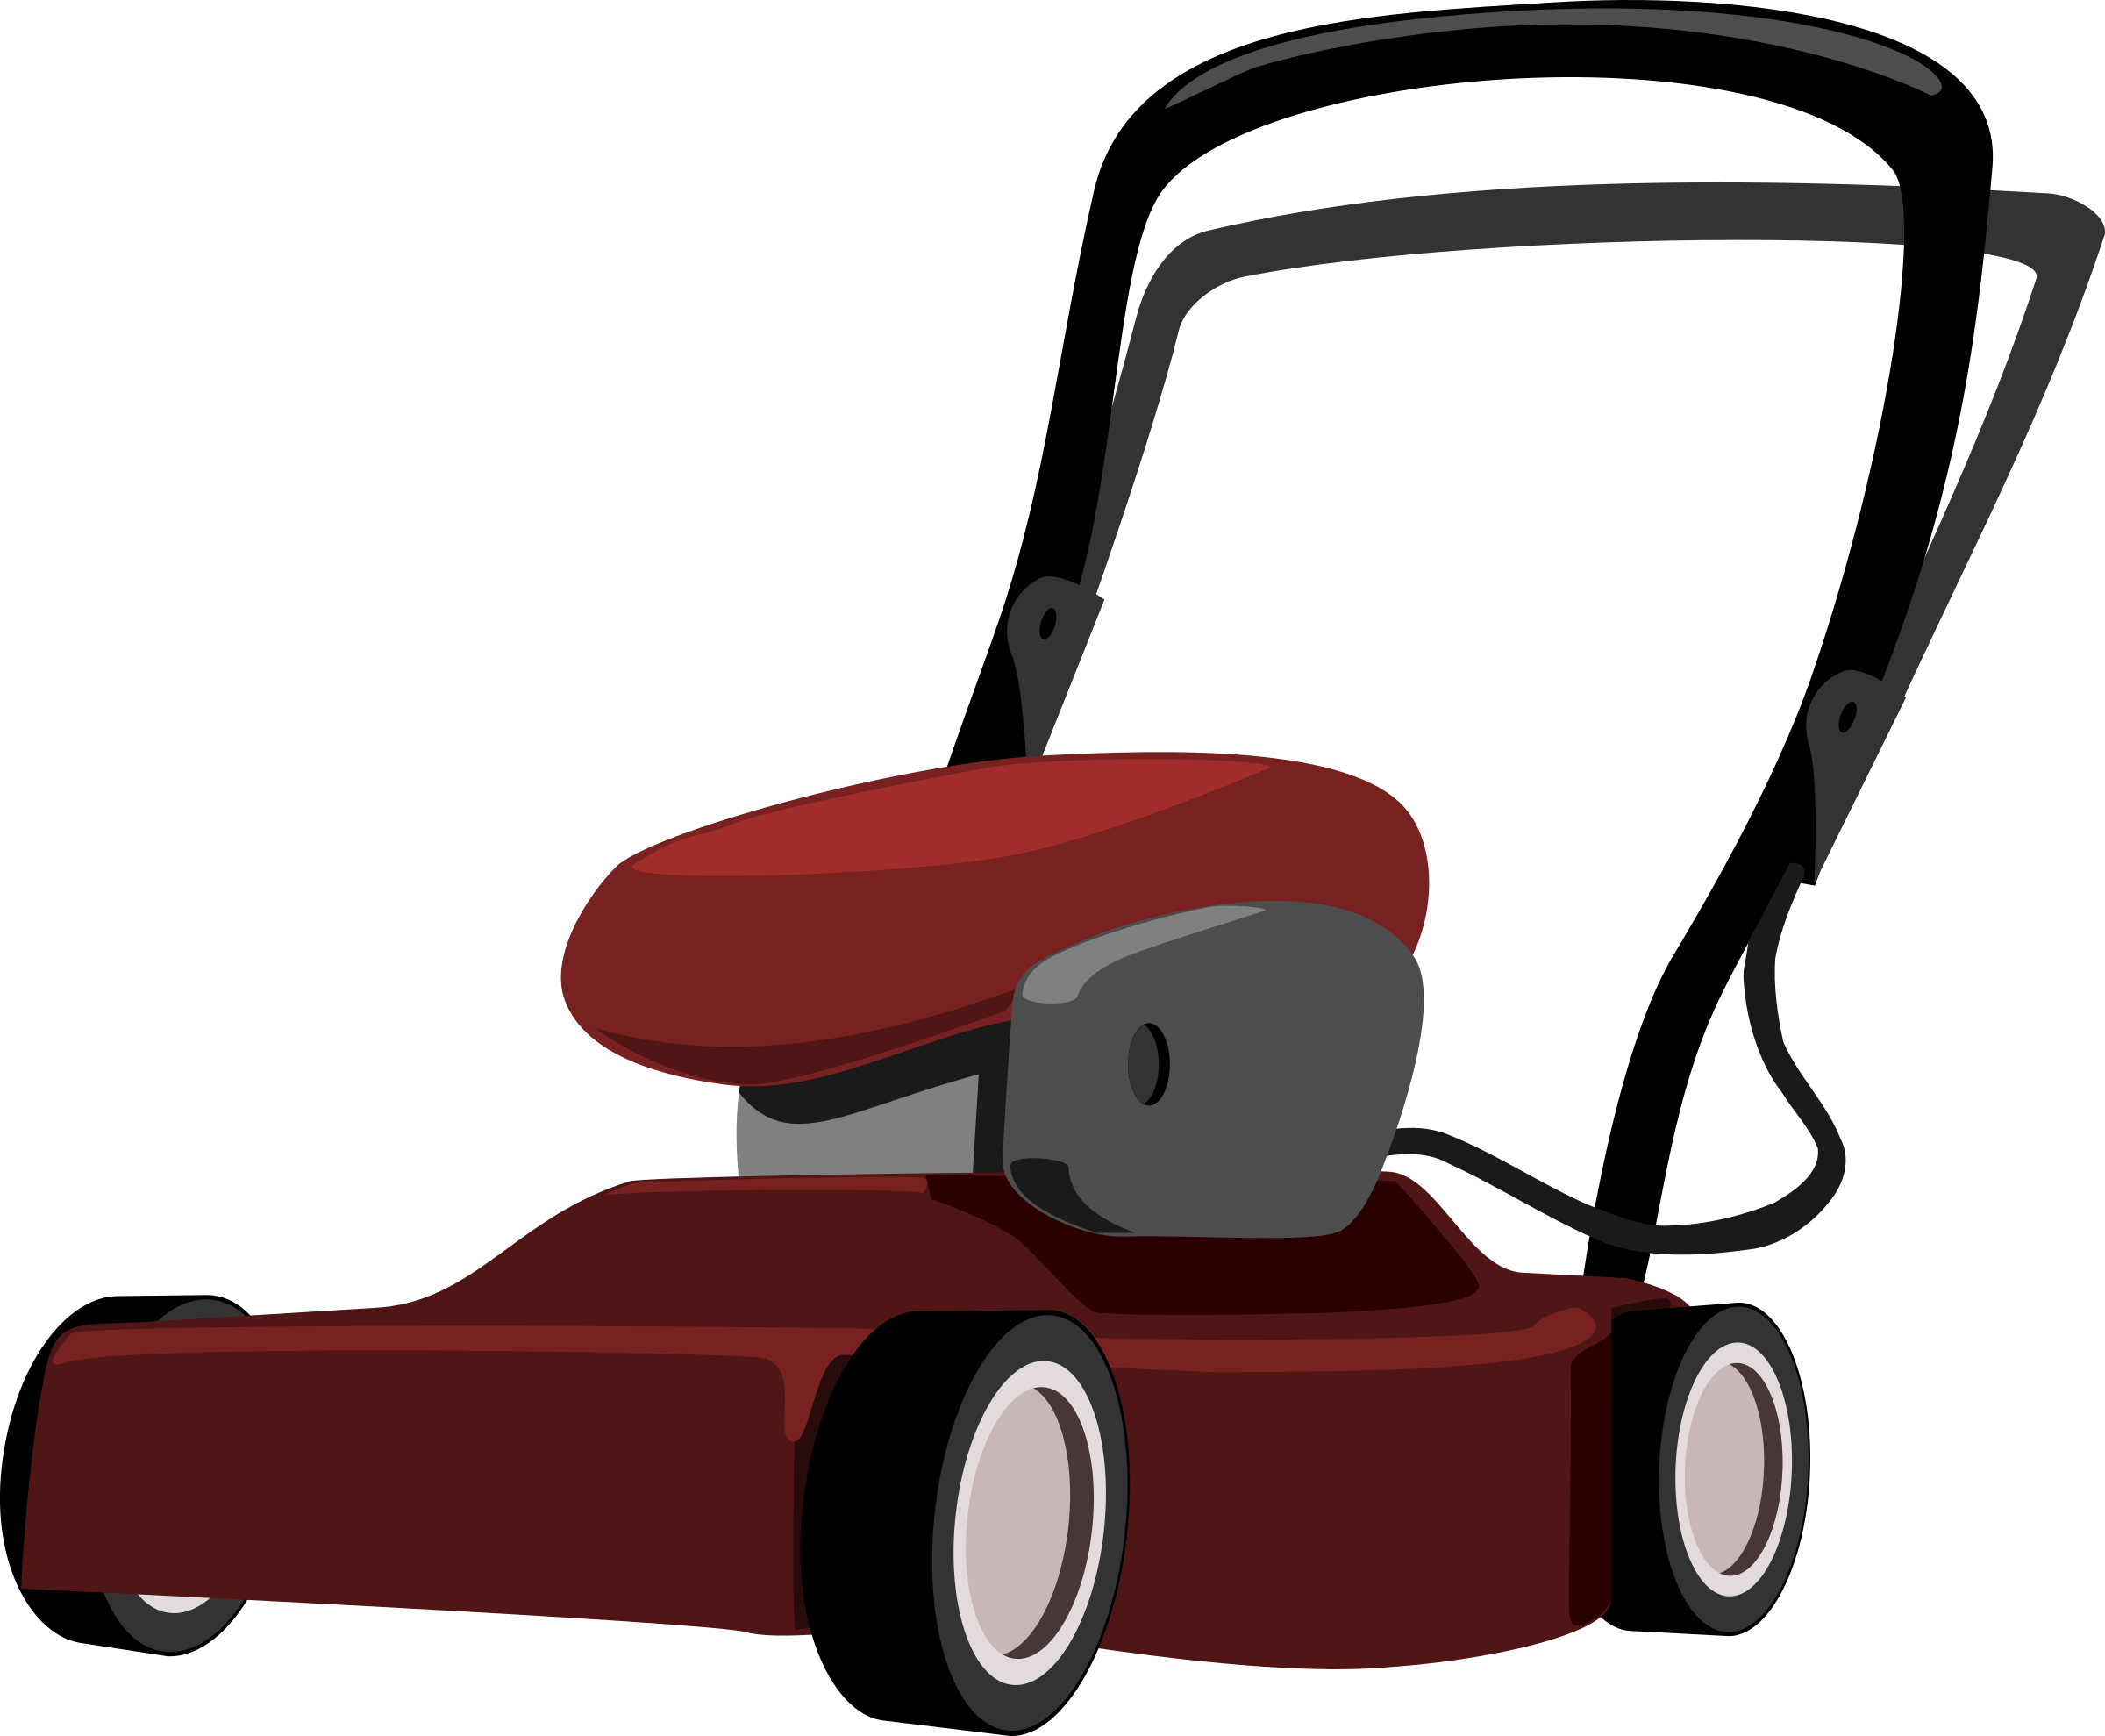 lawn mower by tzunghaor